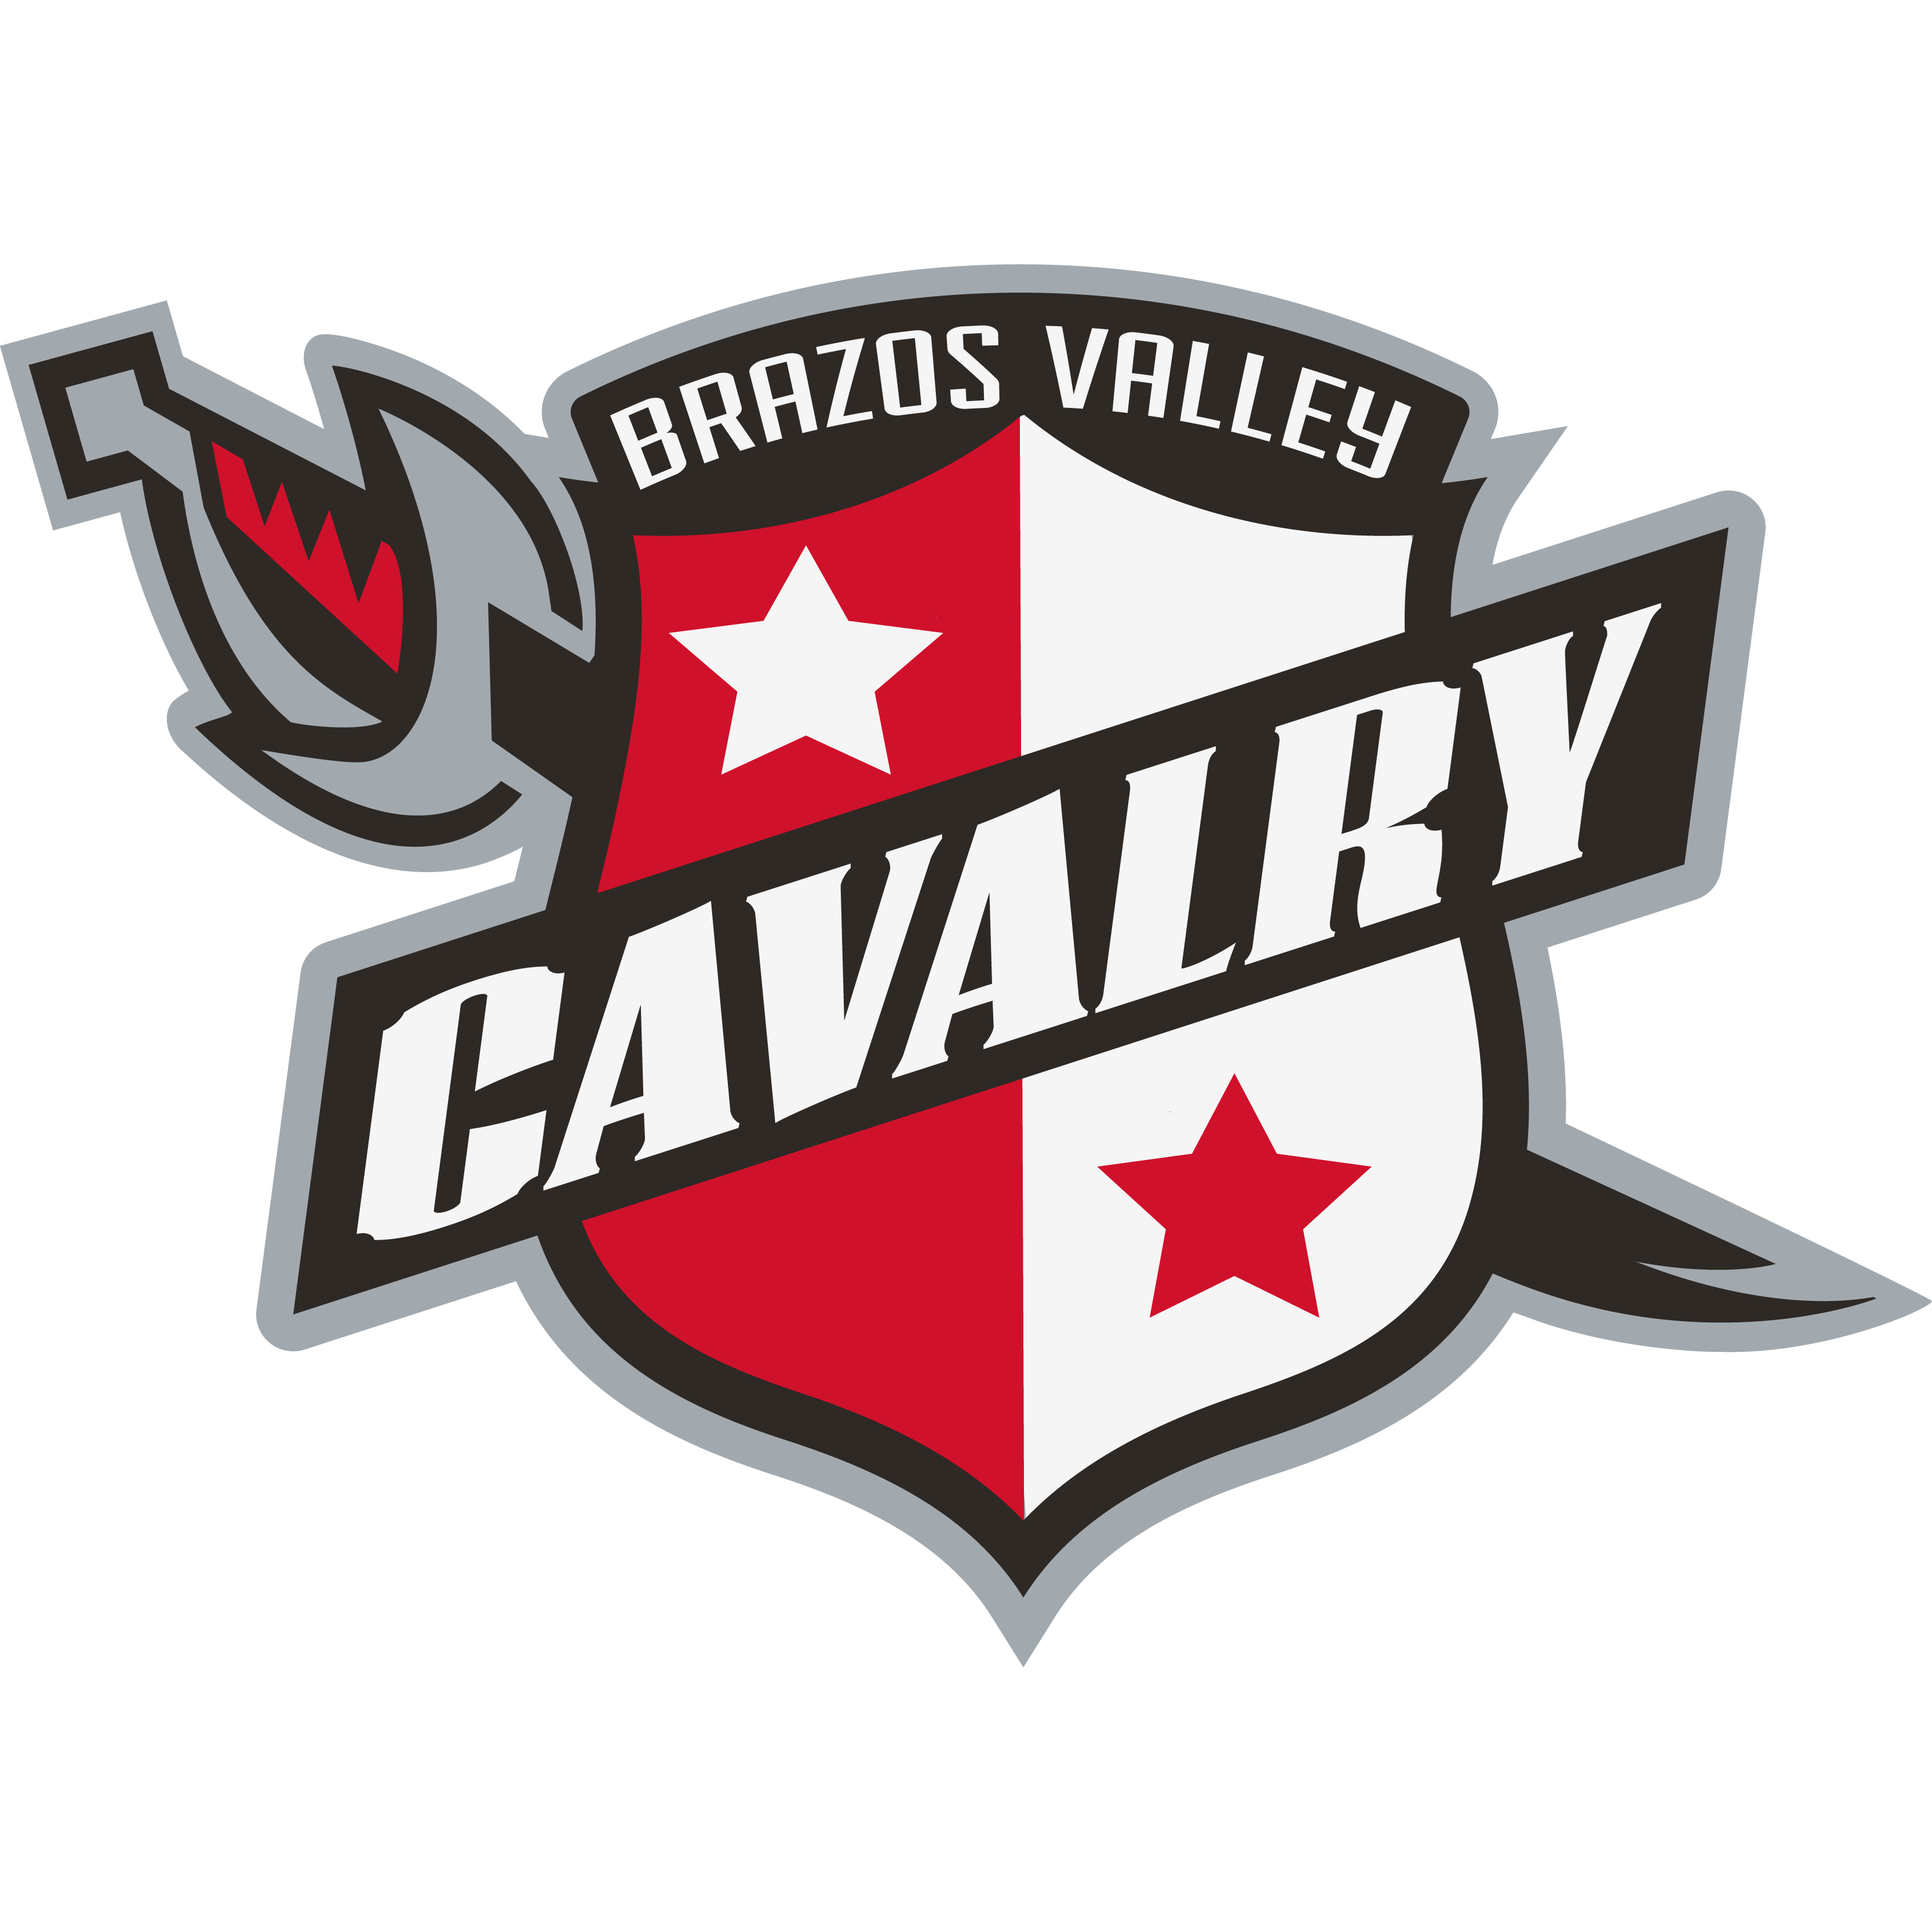 Brazos Valley Calvary